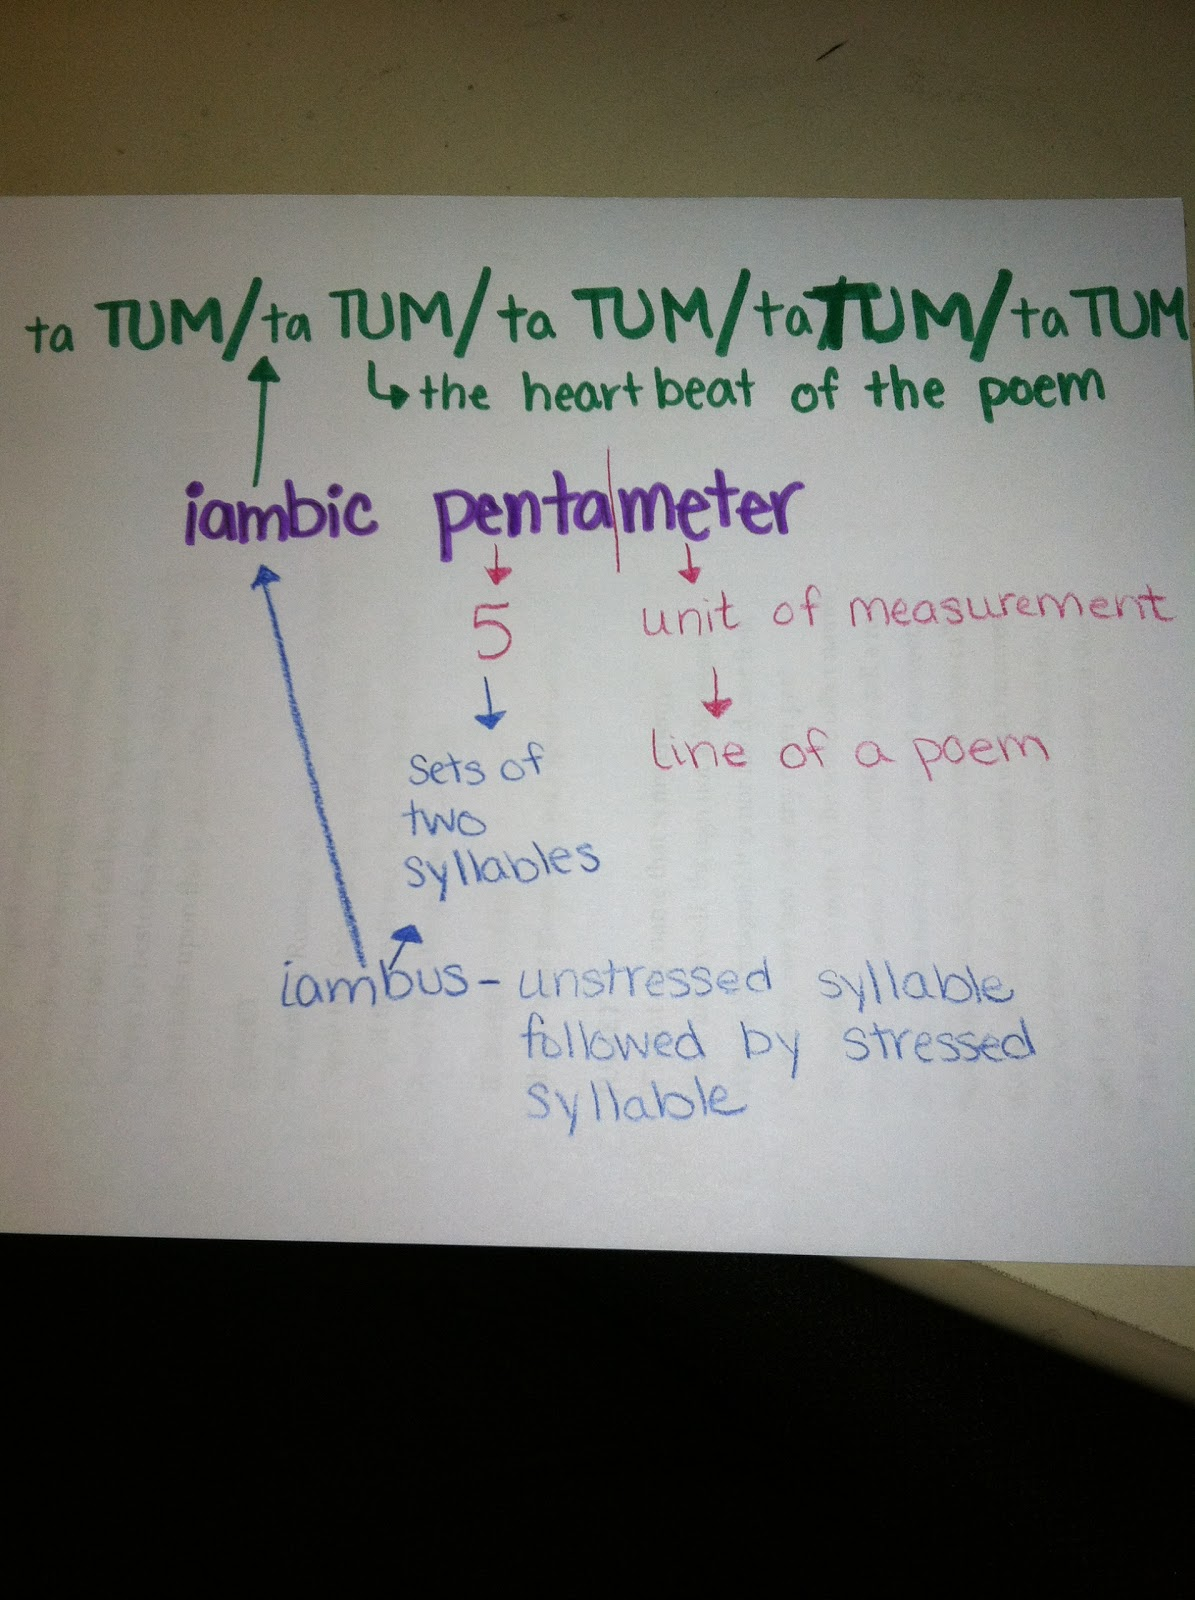 iambic pentameter definition the image